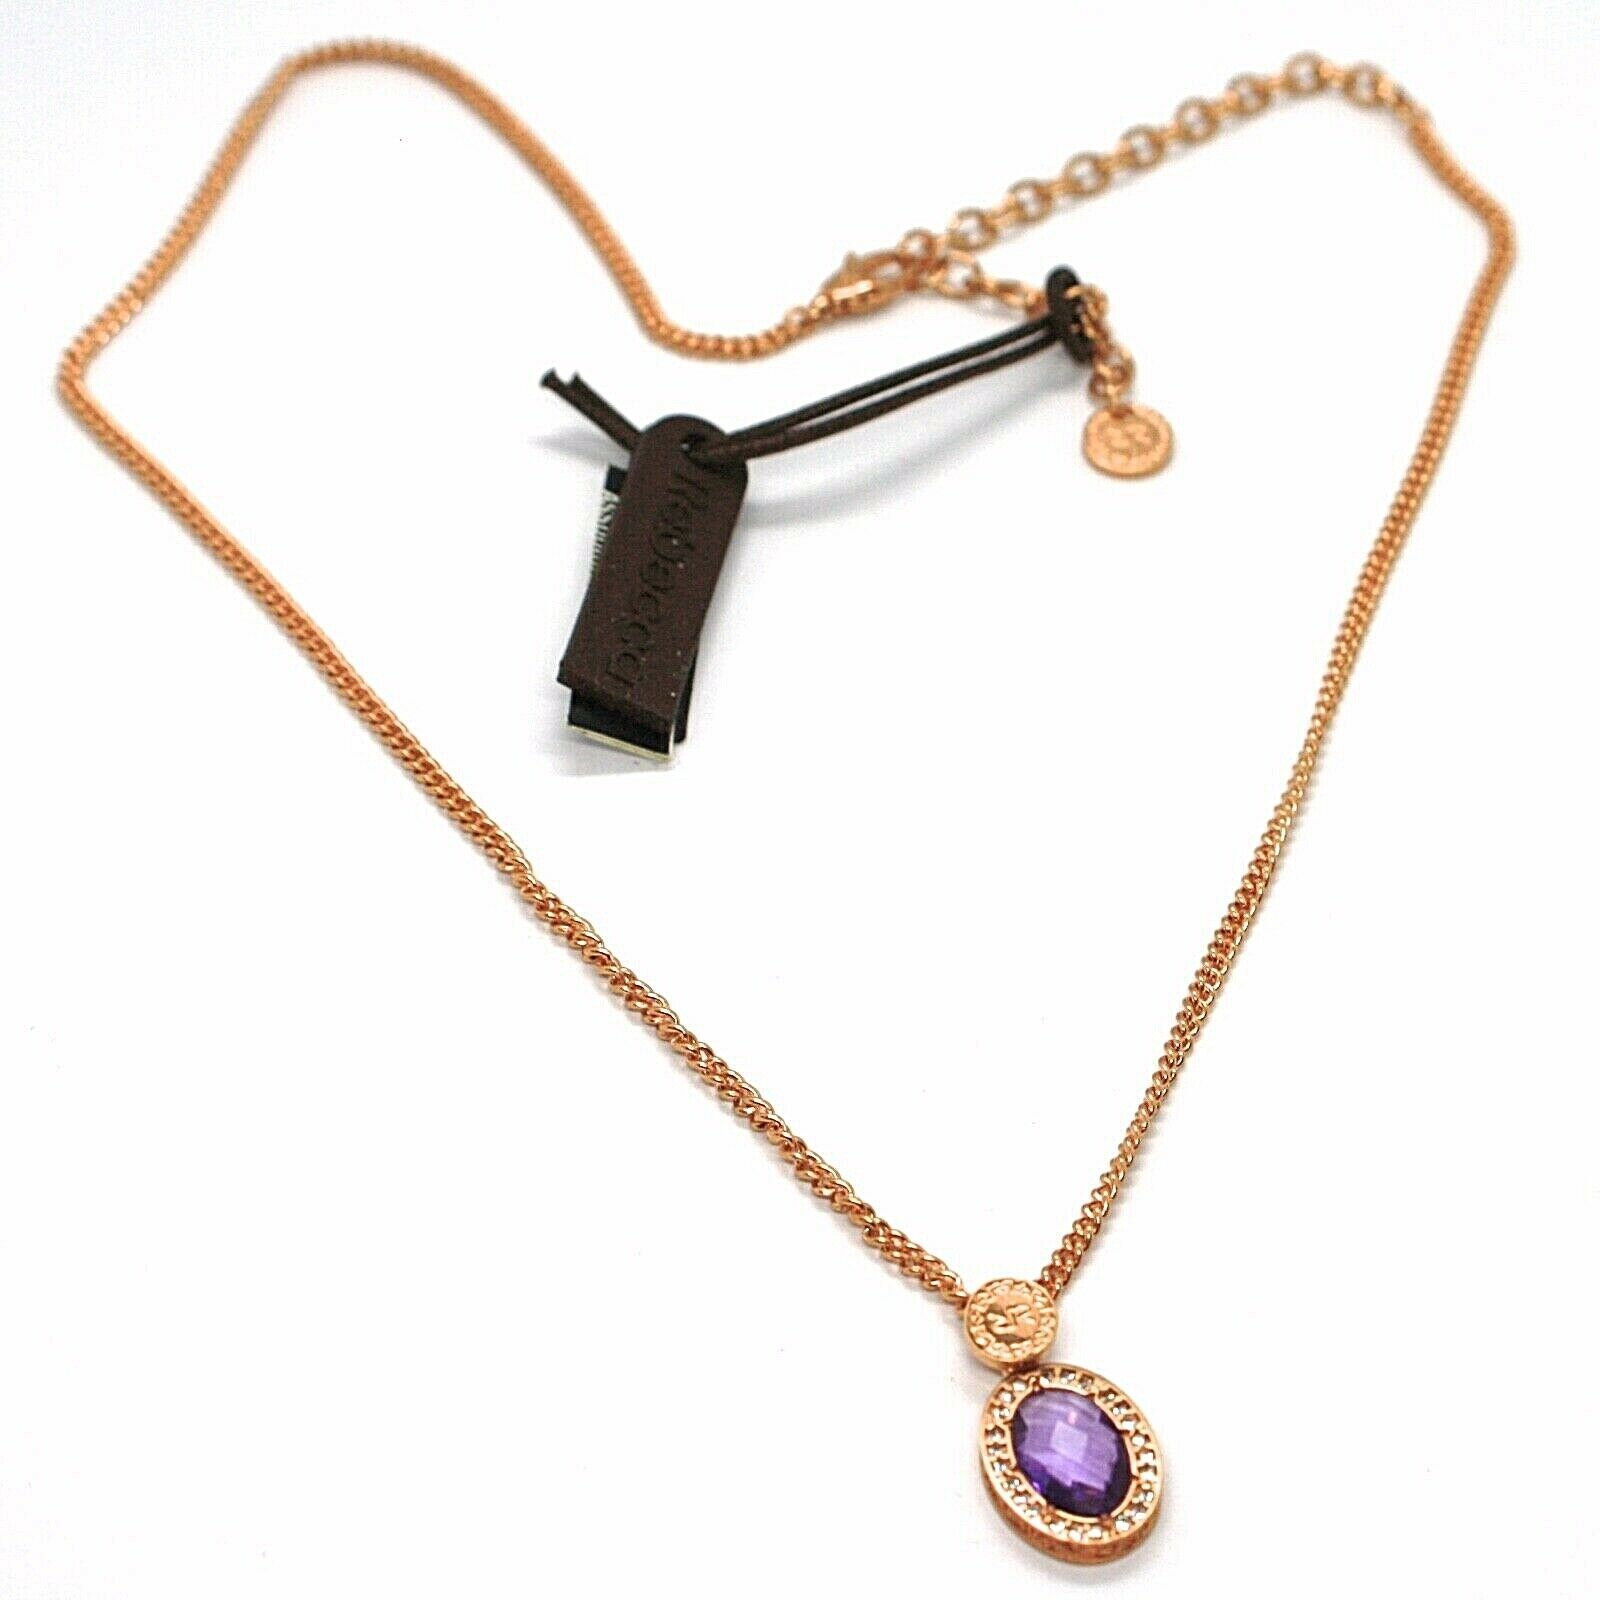 REBECCA BRONZE ROSE NECKLACE, GROUMETTE CHAIN, PURPLE CRYSTAL OVAL, B14KRA23